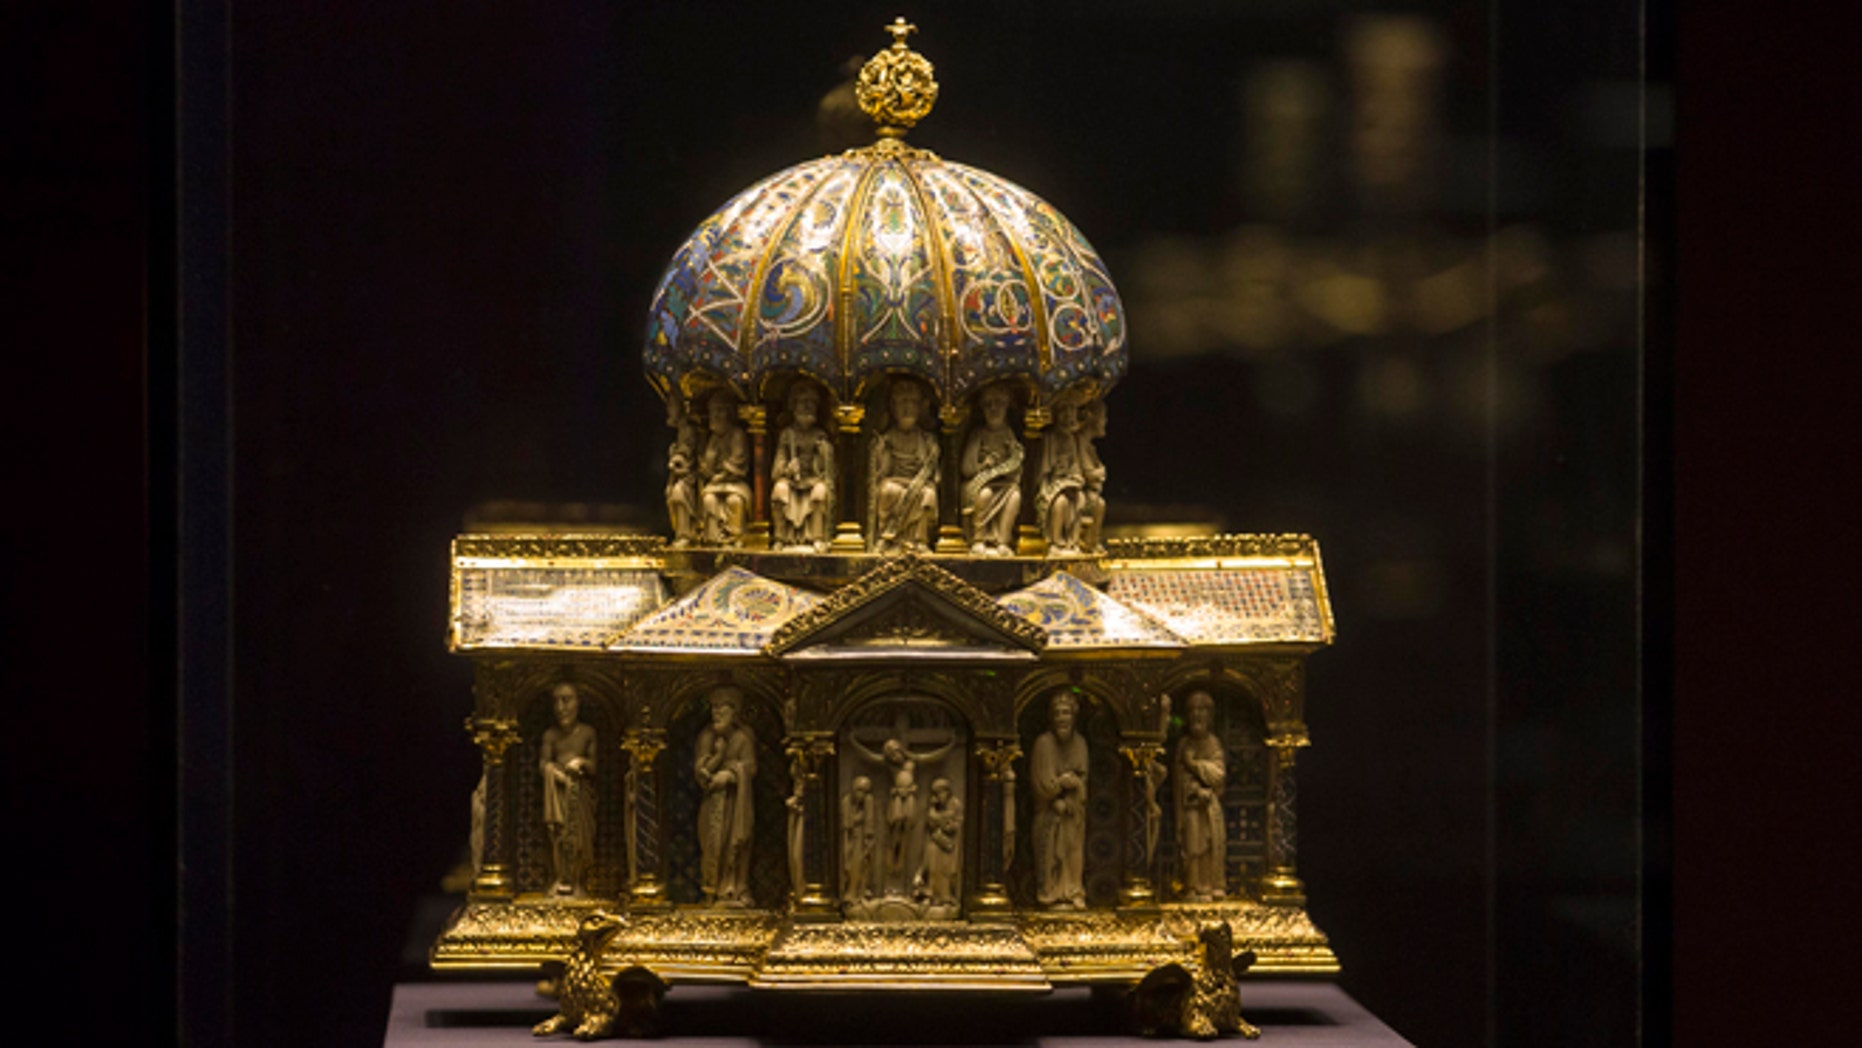 Jan. 9, 2014: In this file picture the medieval Dome Reliquary (13th century) of the Welfenschatz, is displayed at the Bode Museum in Berlin.